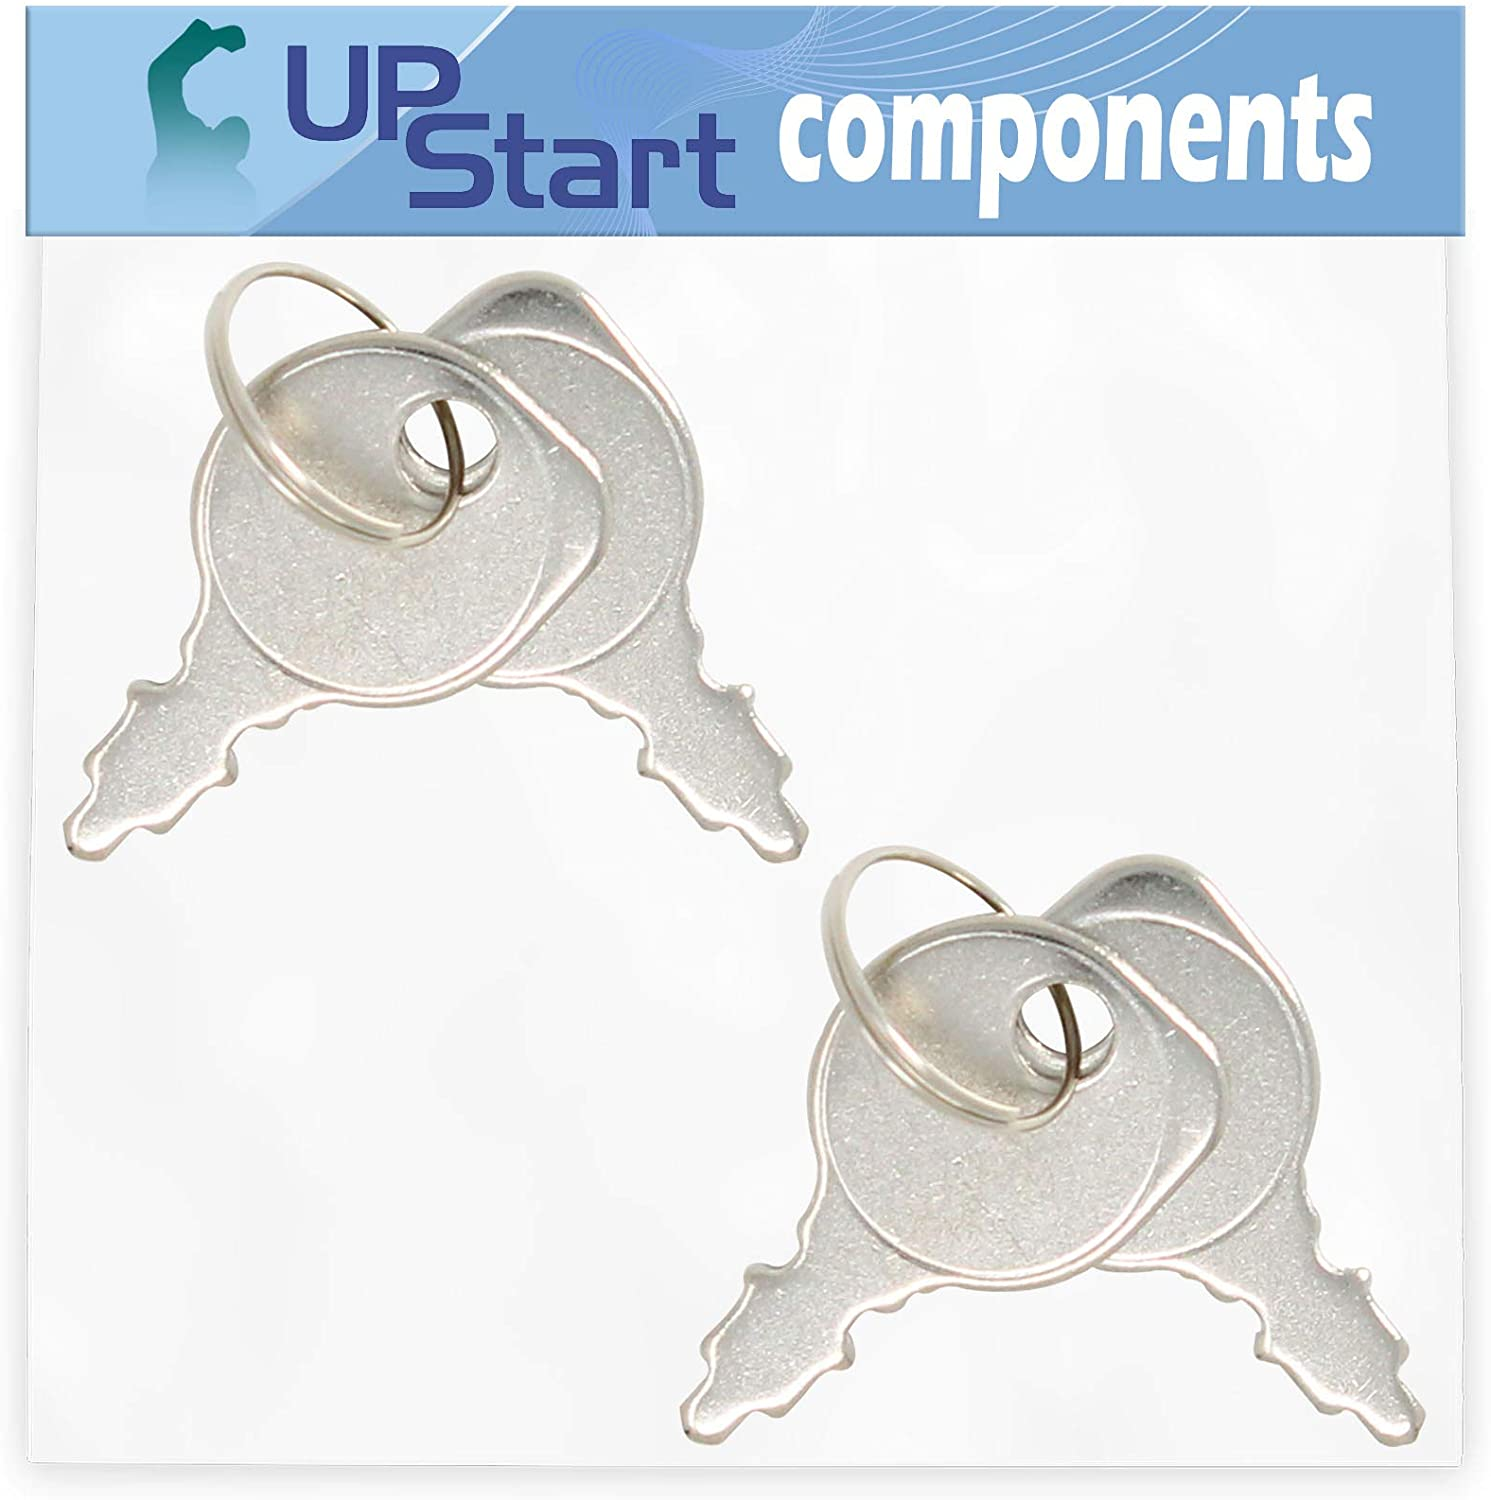 UpStart Components 2-Pack 725-0201 Starter Key Set Replacement for Murray 385044x51A-SW 38